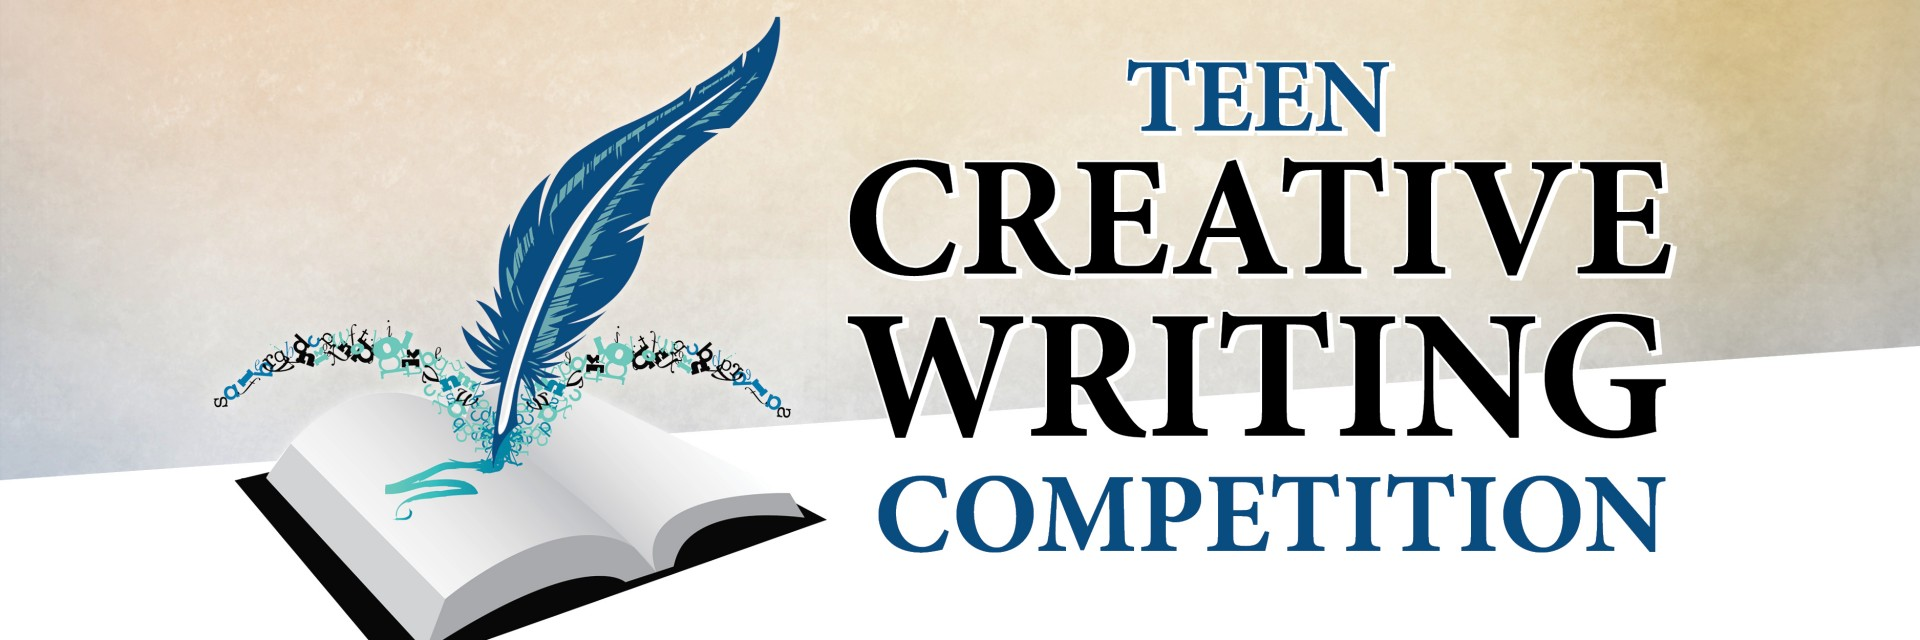 019 Teen Scene Farmington Community Library Tcw Banner Essay Writing Contest Rubrics For Nutrition Month Criteria Tips Objectives Philippines Mechanics Guidelines Incredible International Competitions High School Students Rules By Essayhub 1920